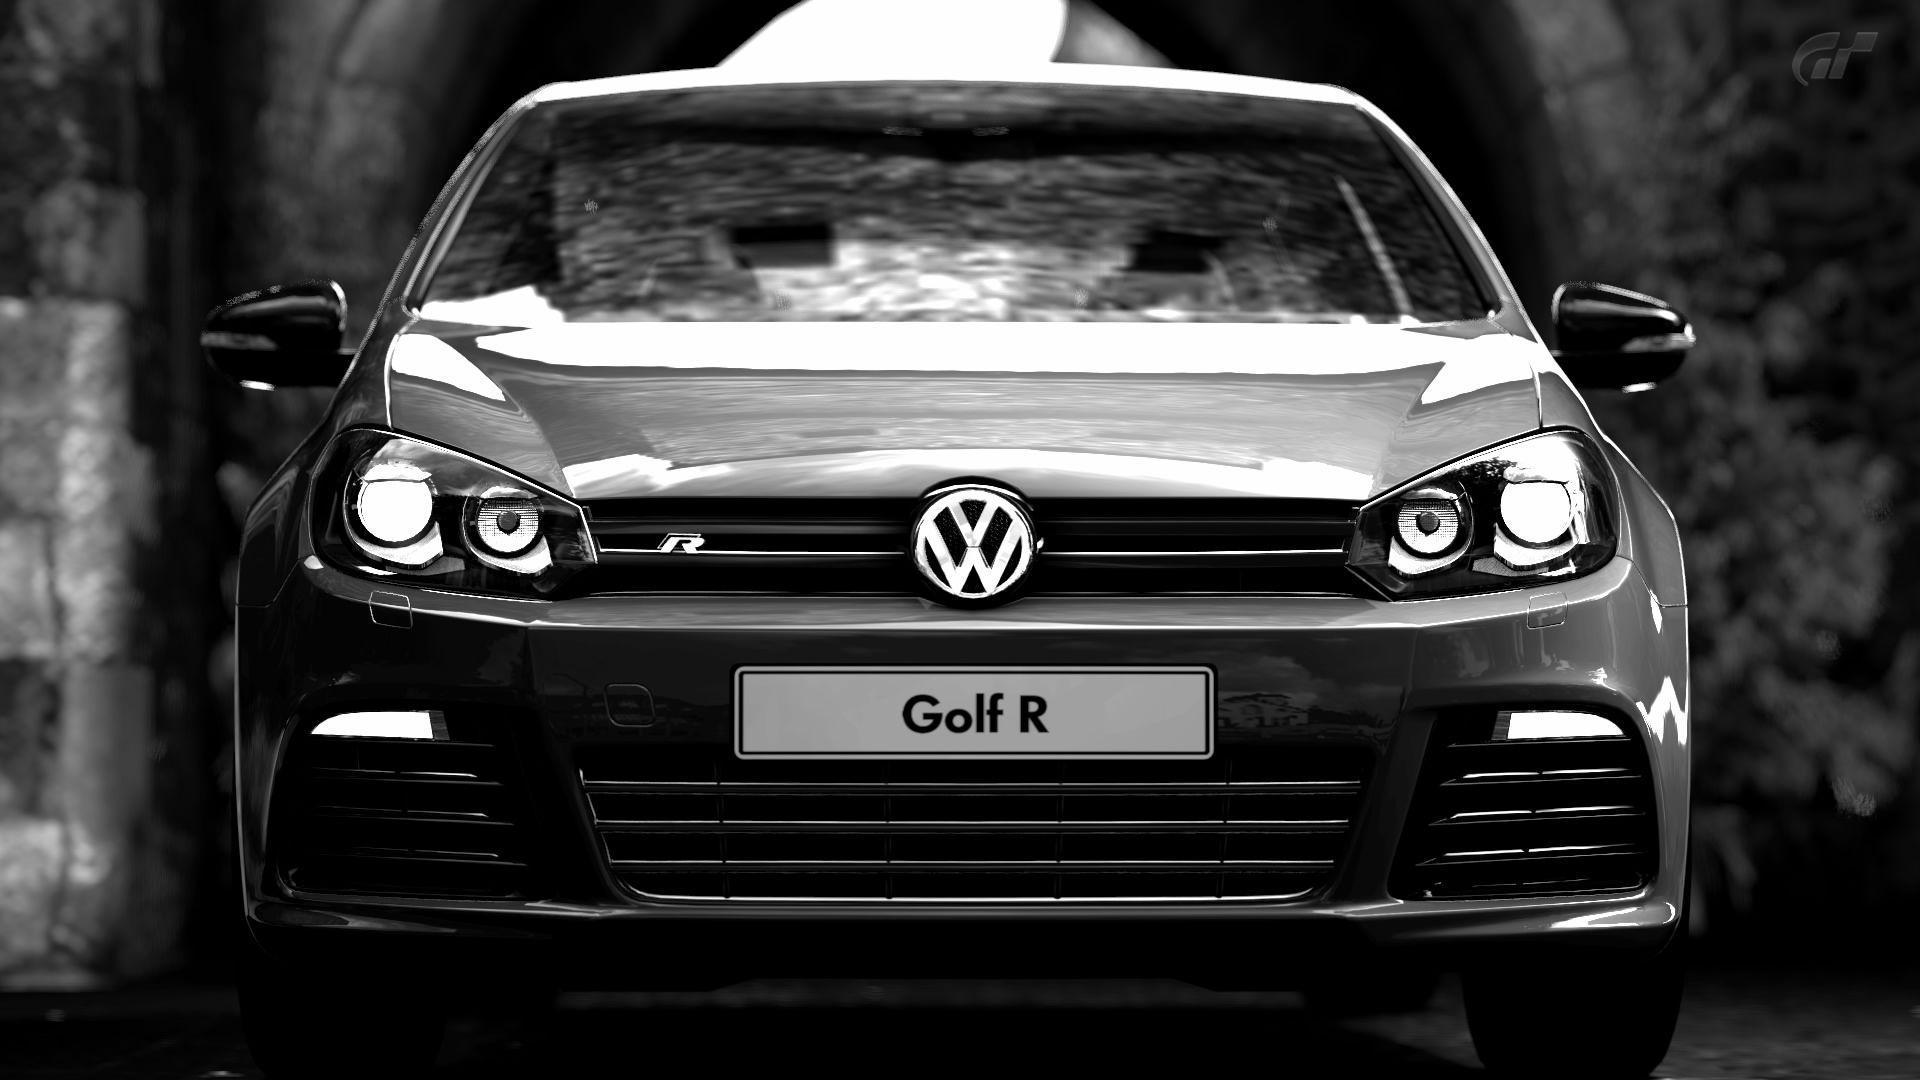 volkswagen golf r wallpapers wallpaper cave. Black Bedroom Furniture Sets. Home Design Ideas